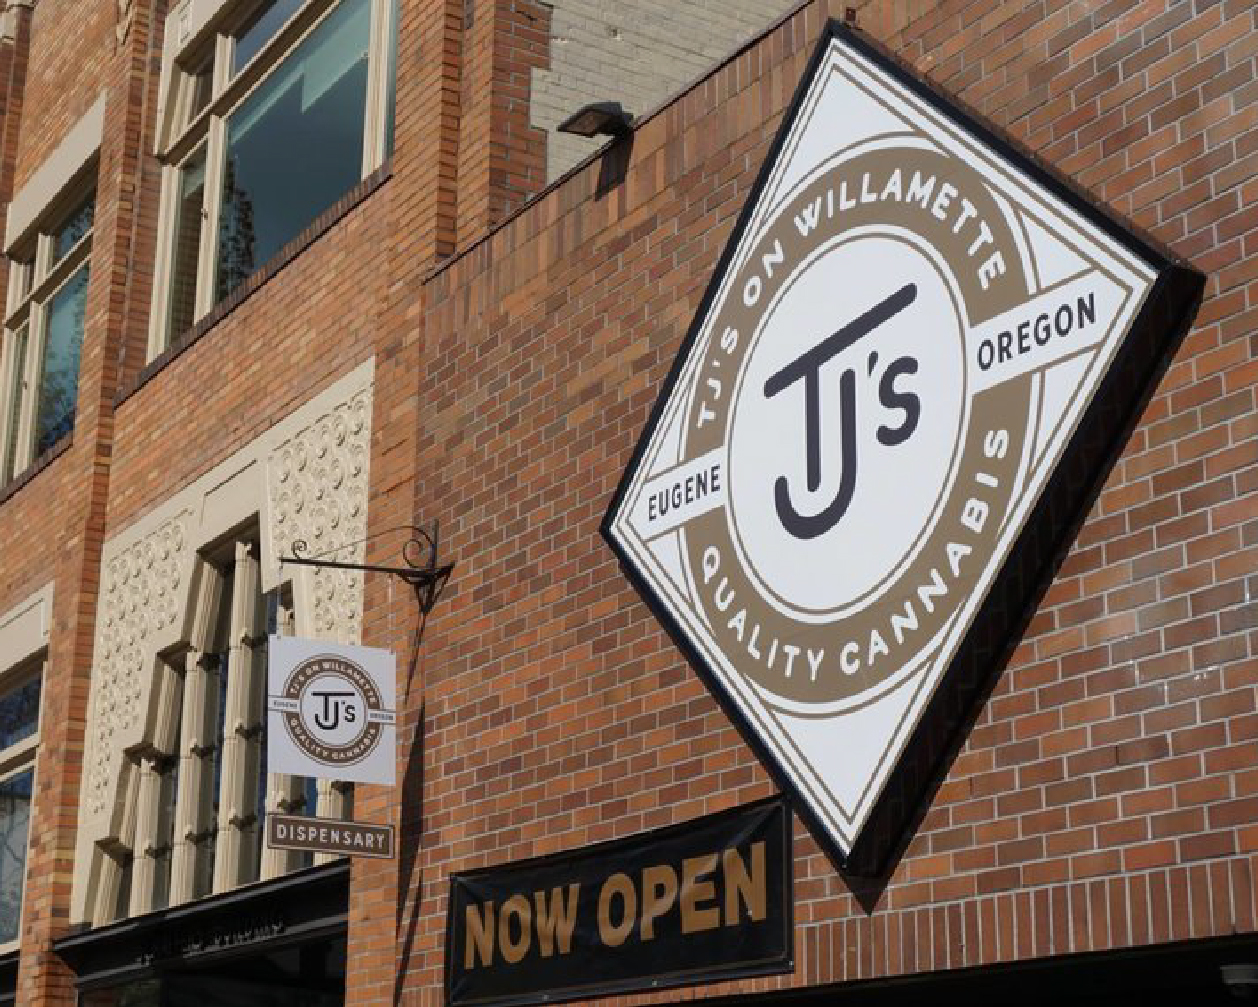 TJ's on Willamette Storefront